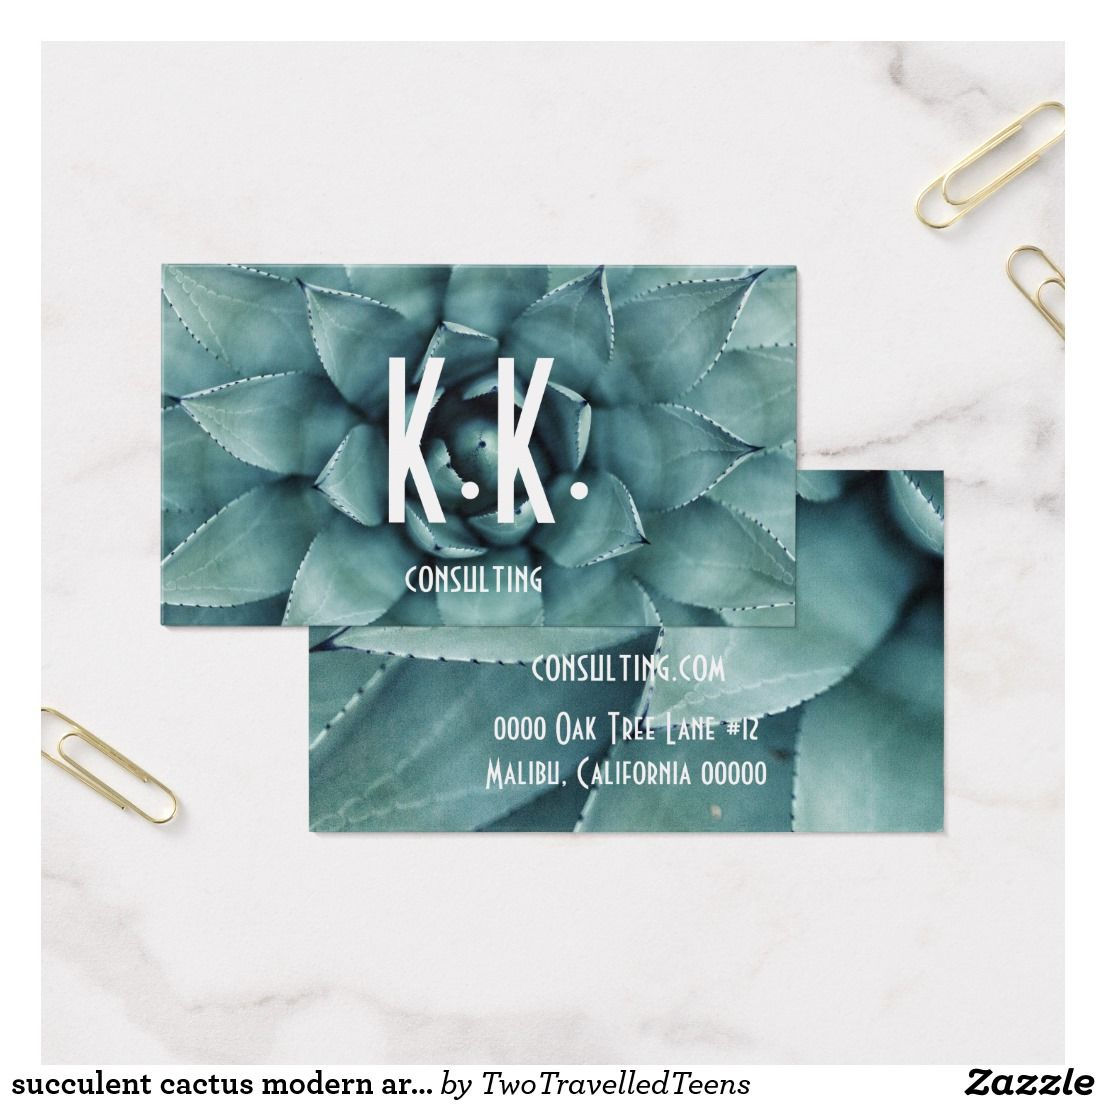 Succulent cactus modern artsy grunge business card | Business cards